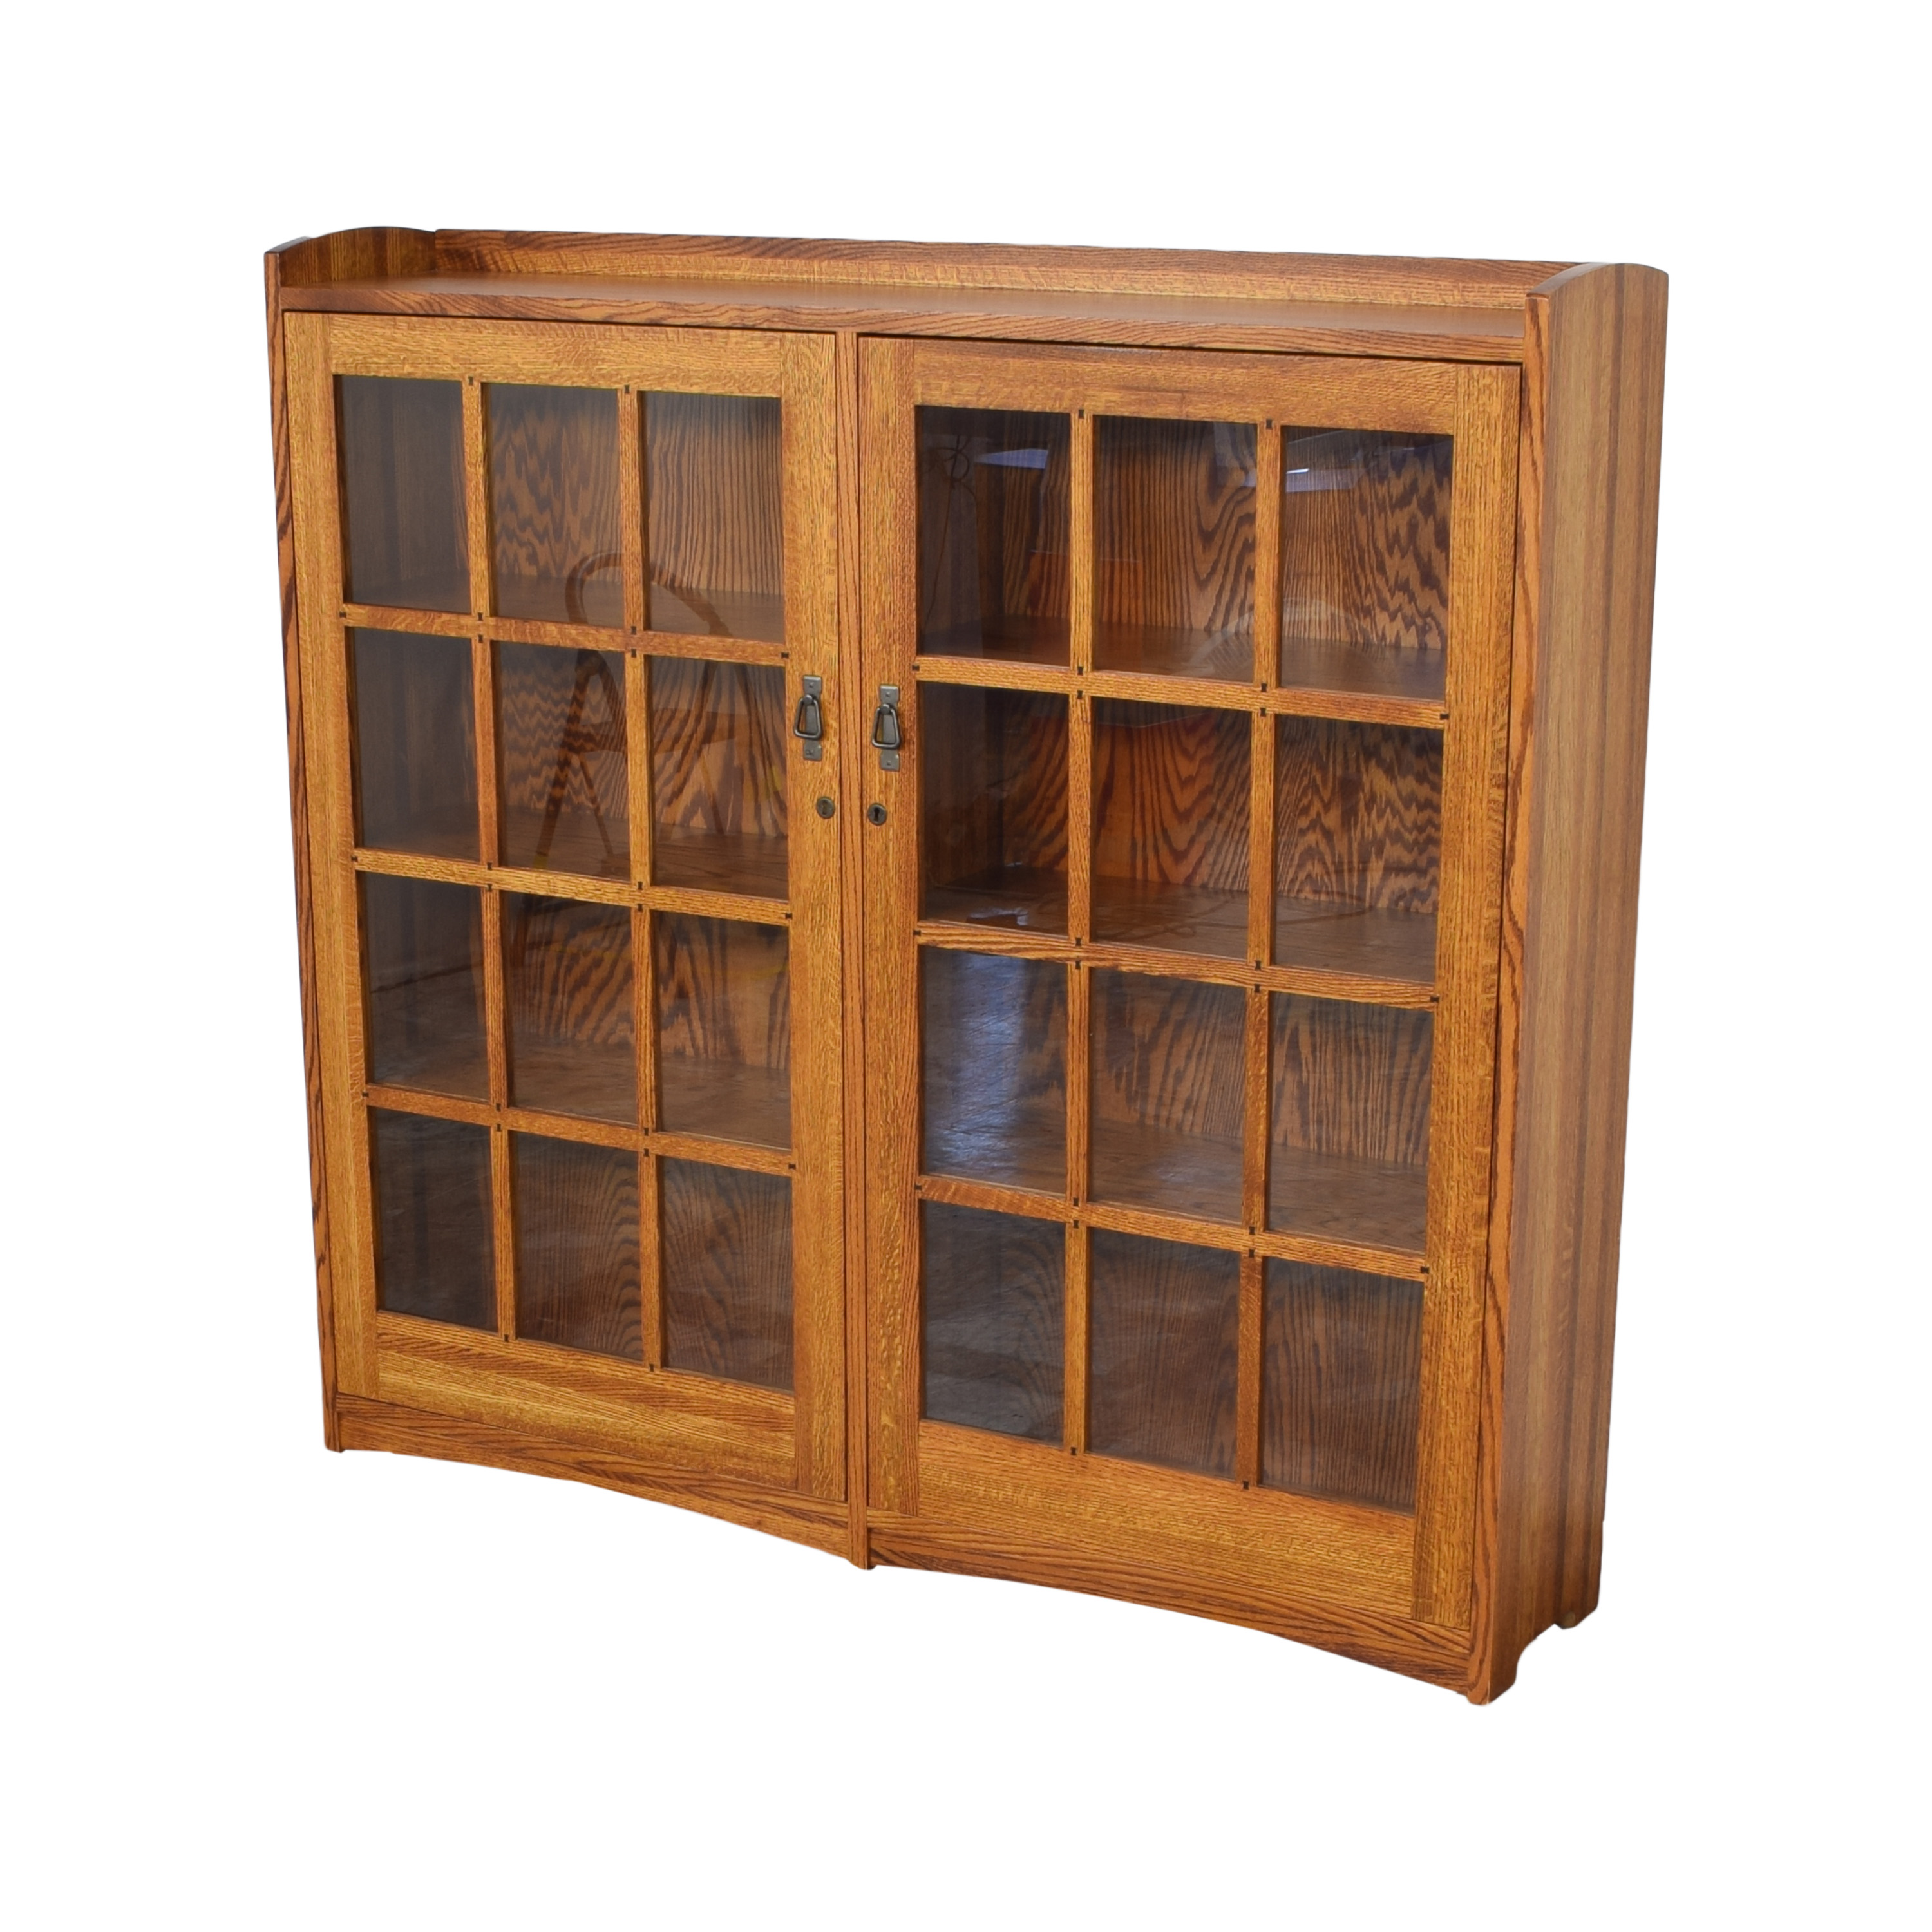 Restoration Hardware Restoration Hardware Mission Double Barrister Bookcase pa